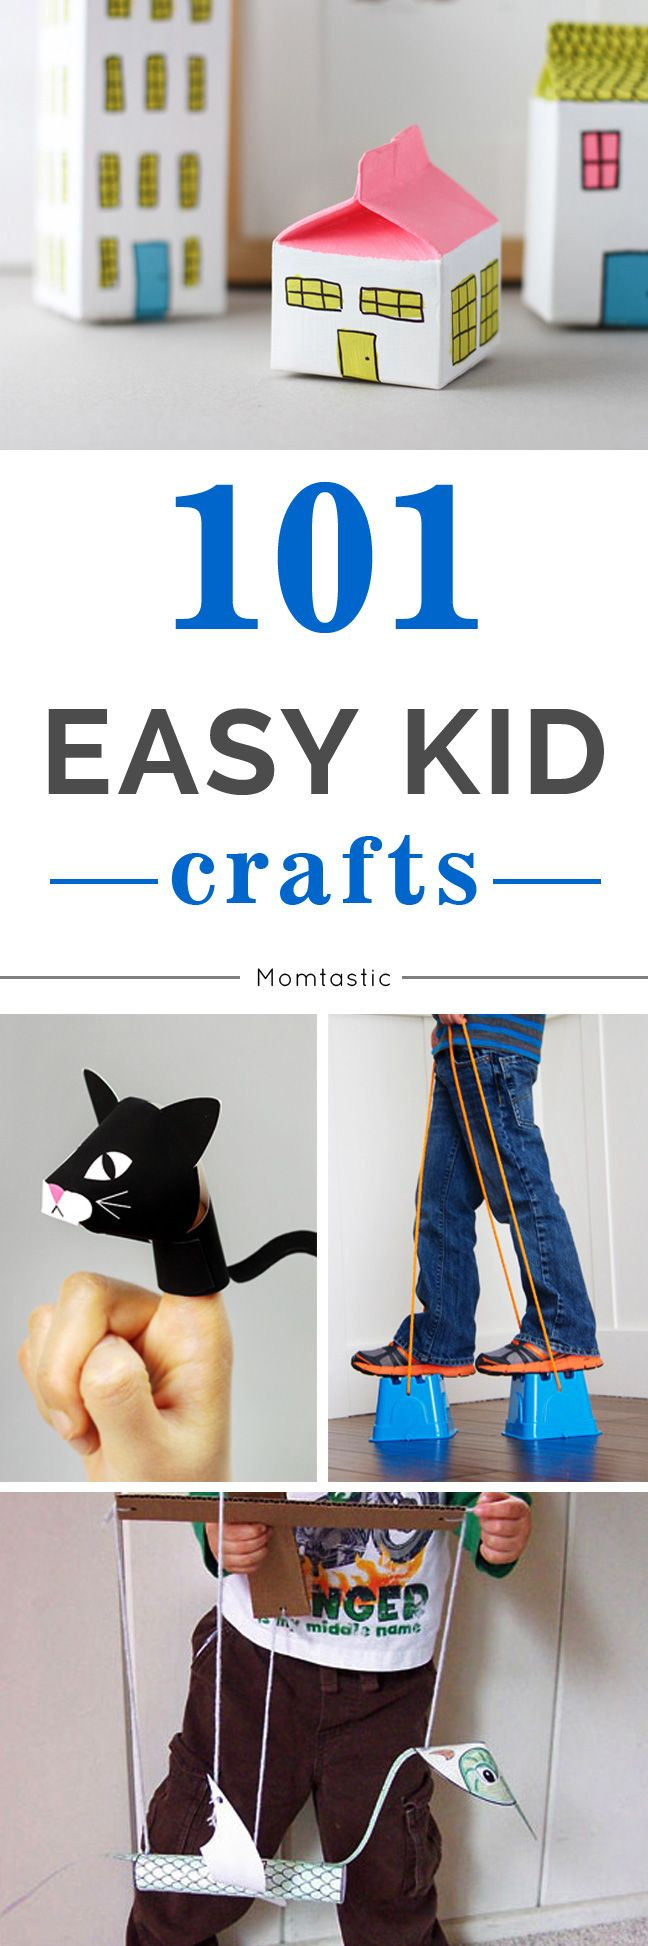 Rather than leave it up to the kids to entertain themselves, prepare yourself with a few of these craft projects that are guaranteed to keep them happy and entertained.